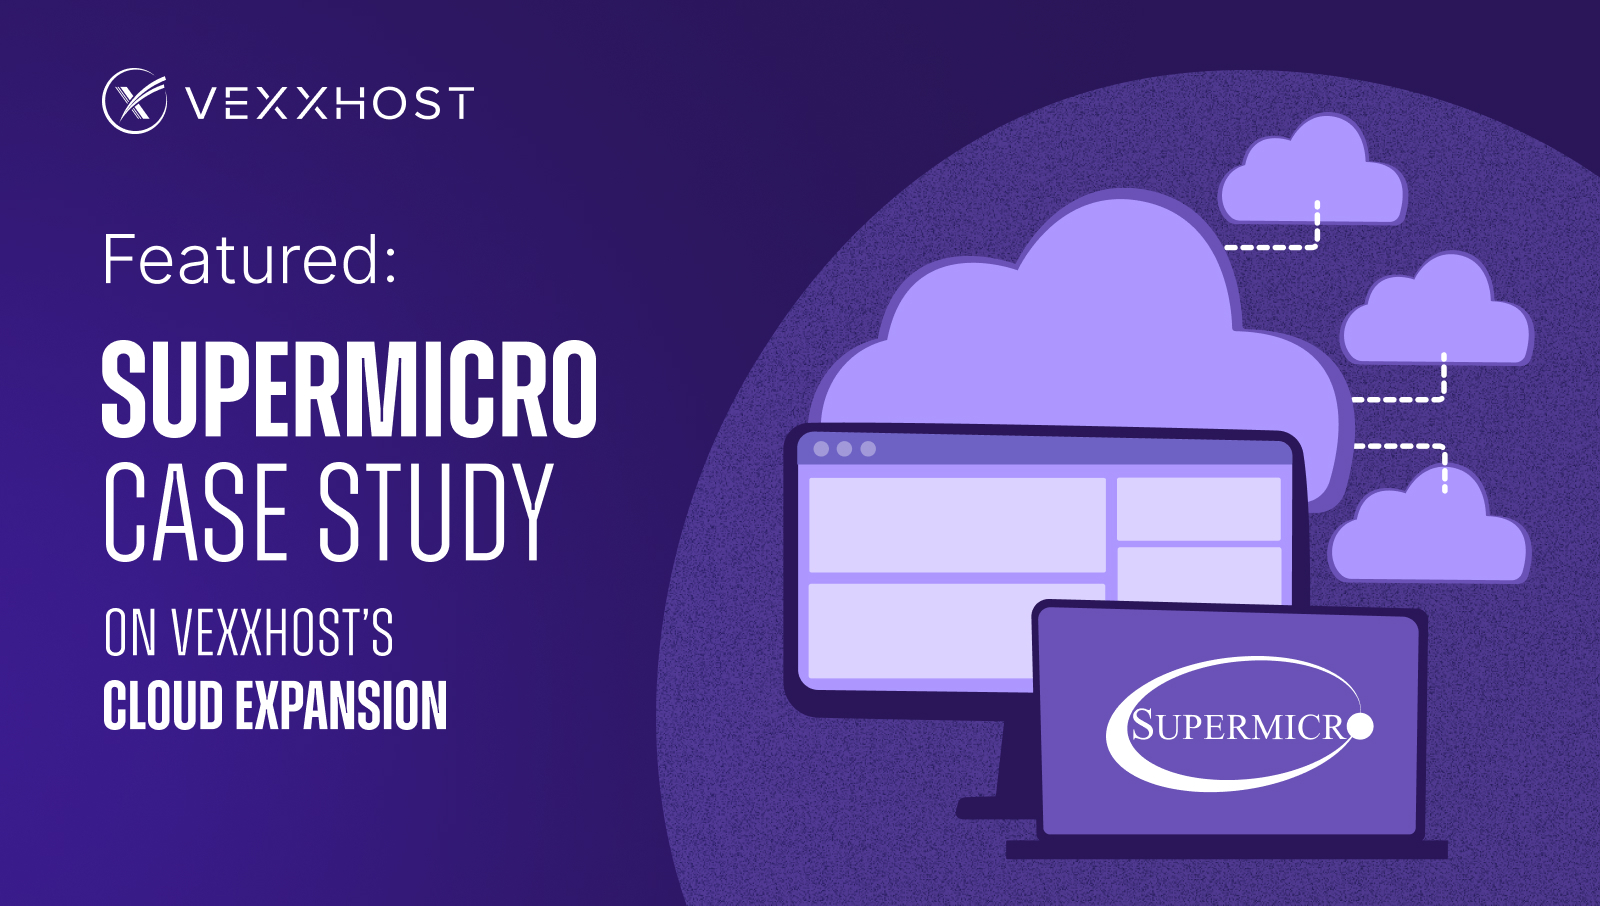 Featured: Supermicro Case Study on VEXXHOST's Cloud Expansion